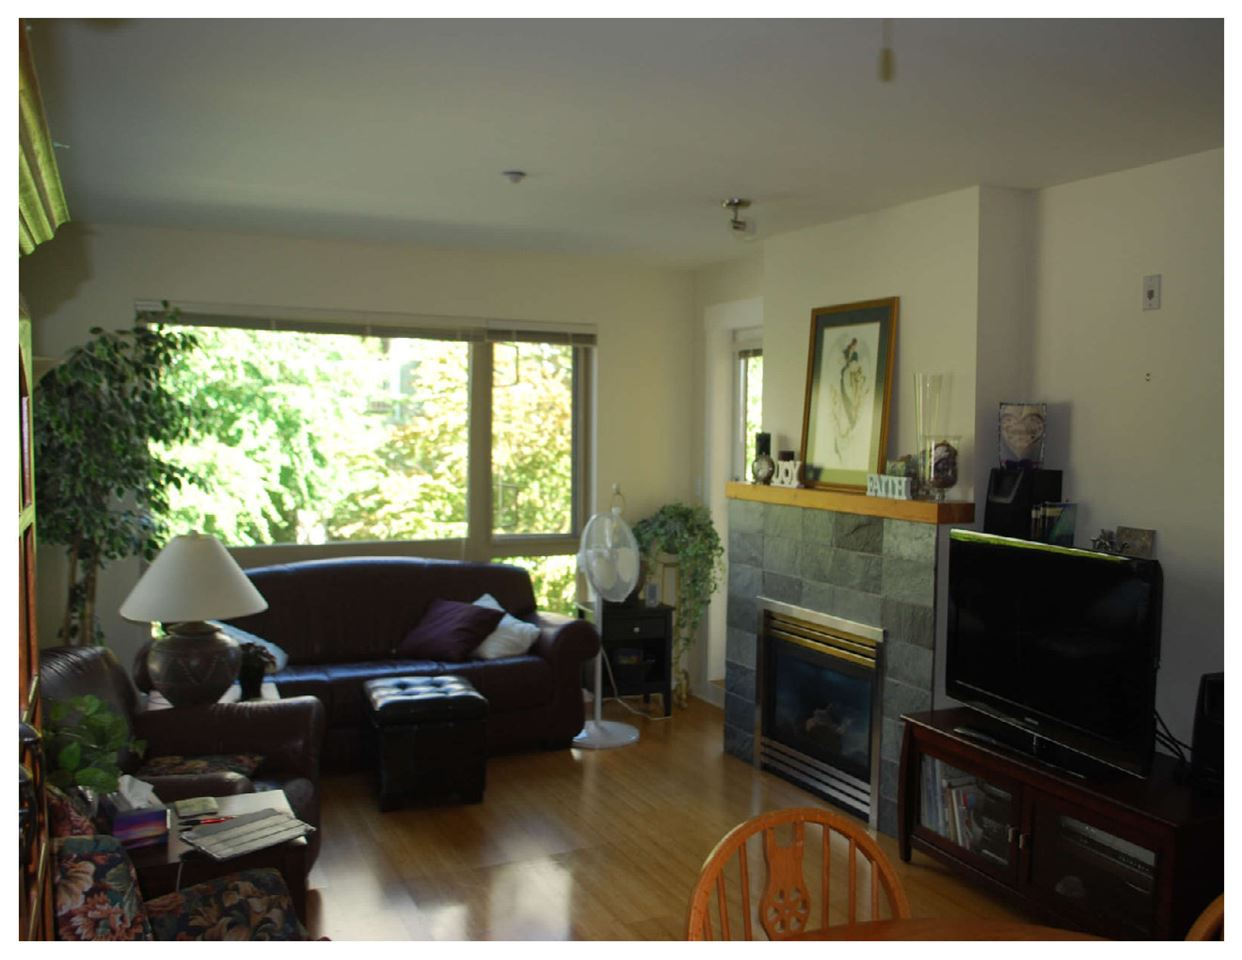 Condo Apartment at 204 1315 56 STREET, Unit 204, Tsawwassen, British Columbia. Image 5